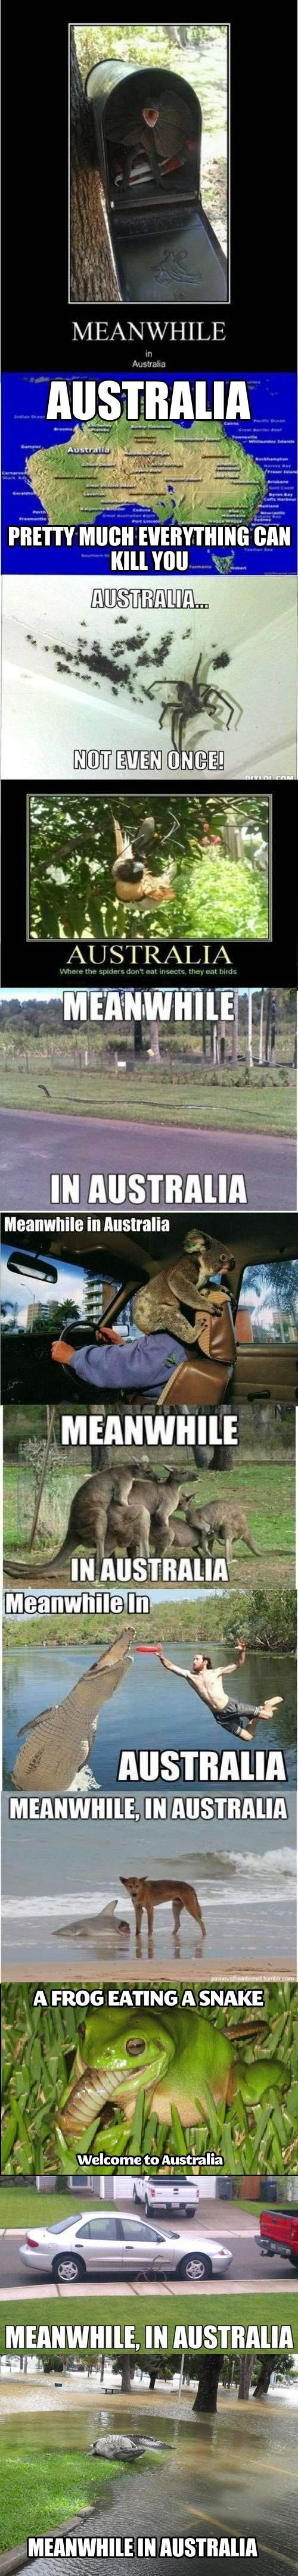 Meanwhile in Australia D:  Always thought I wanted to visit but am having second thoughts!